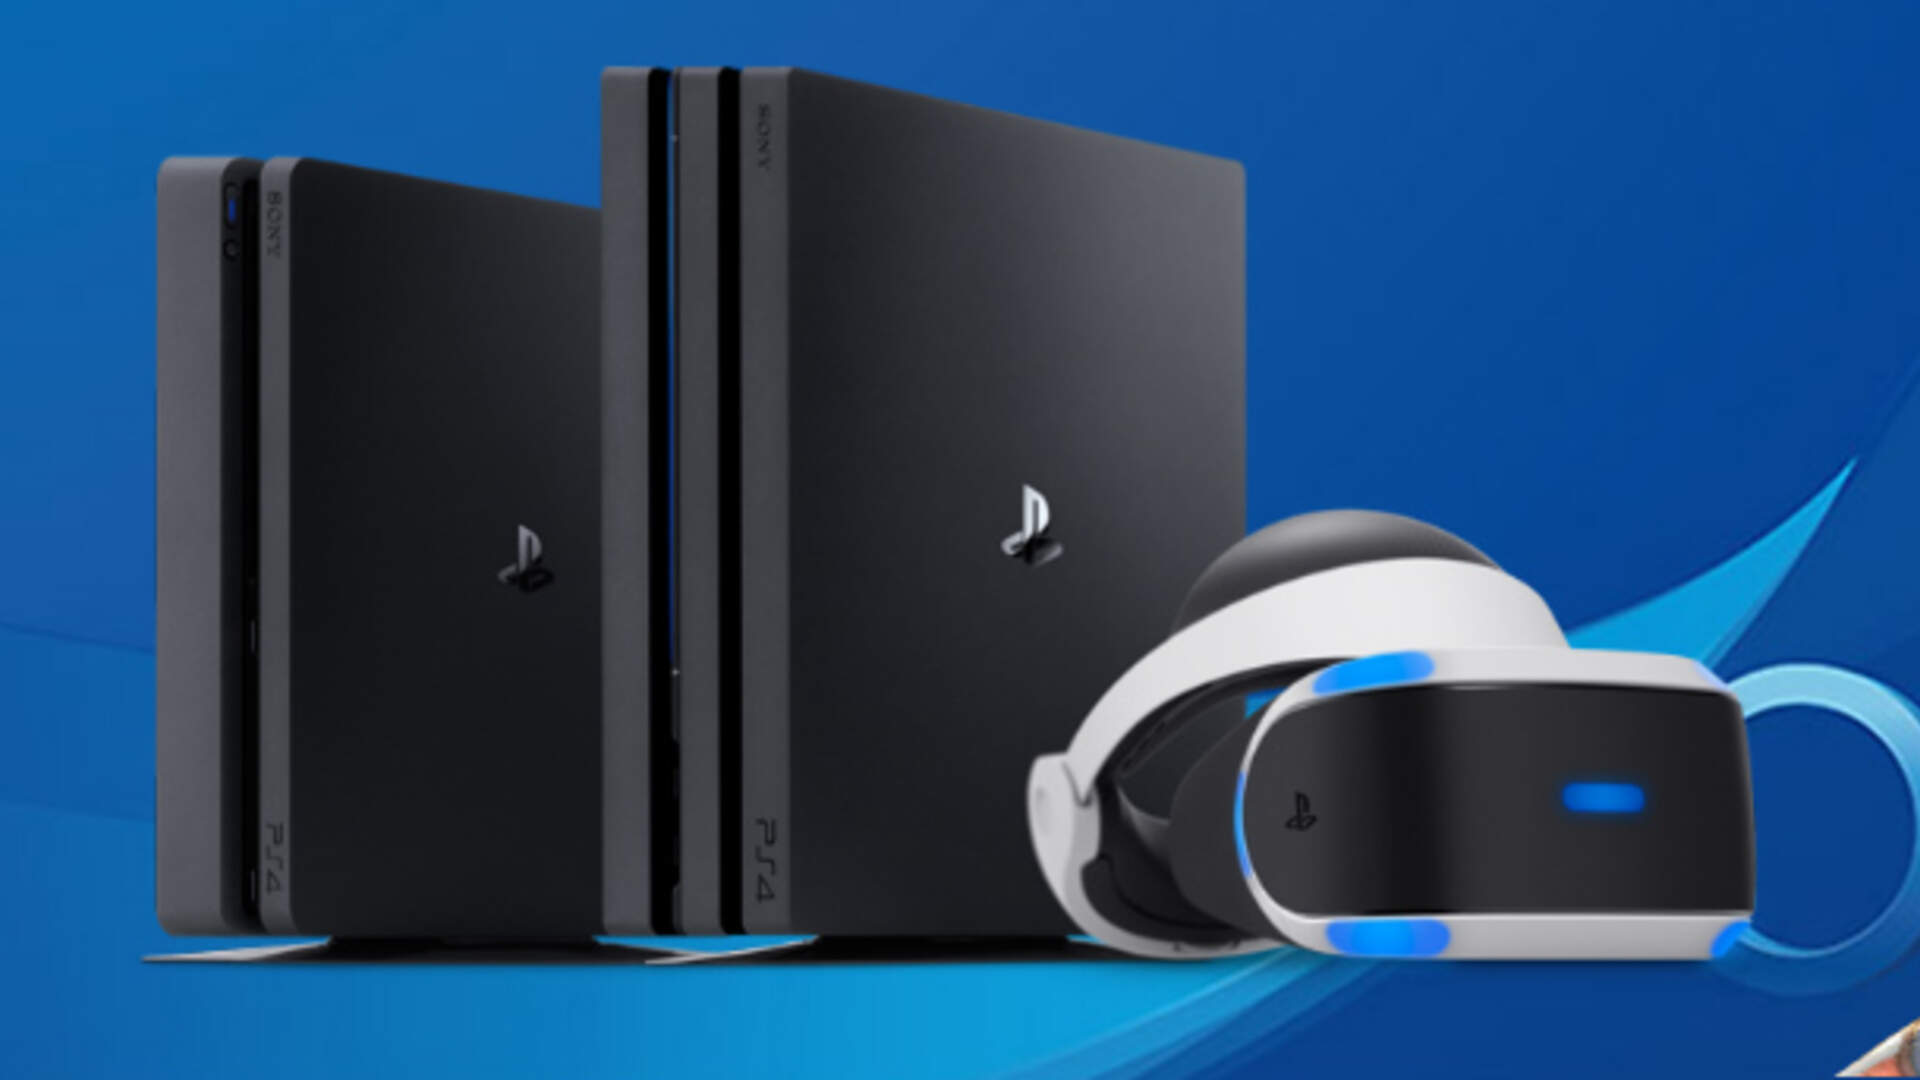 What We Want From PlayStation in 2018